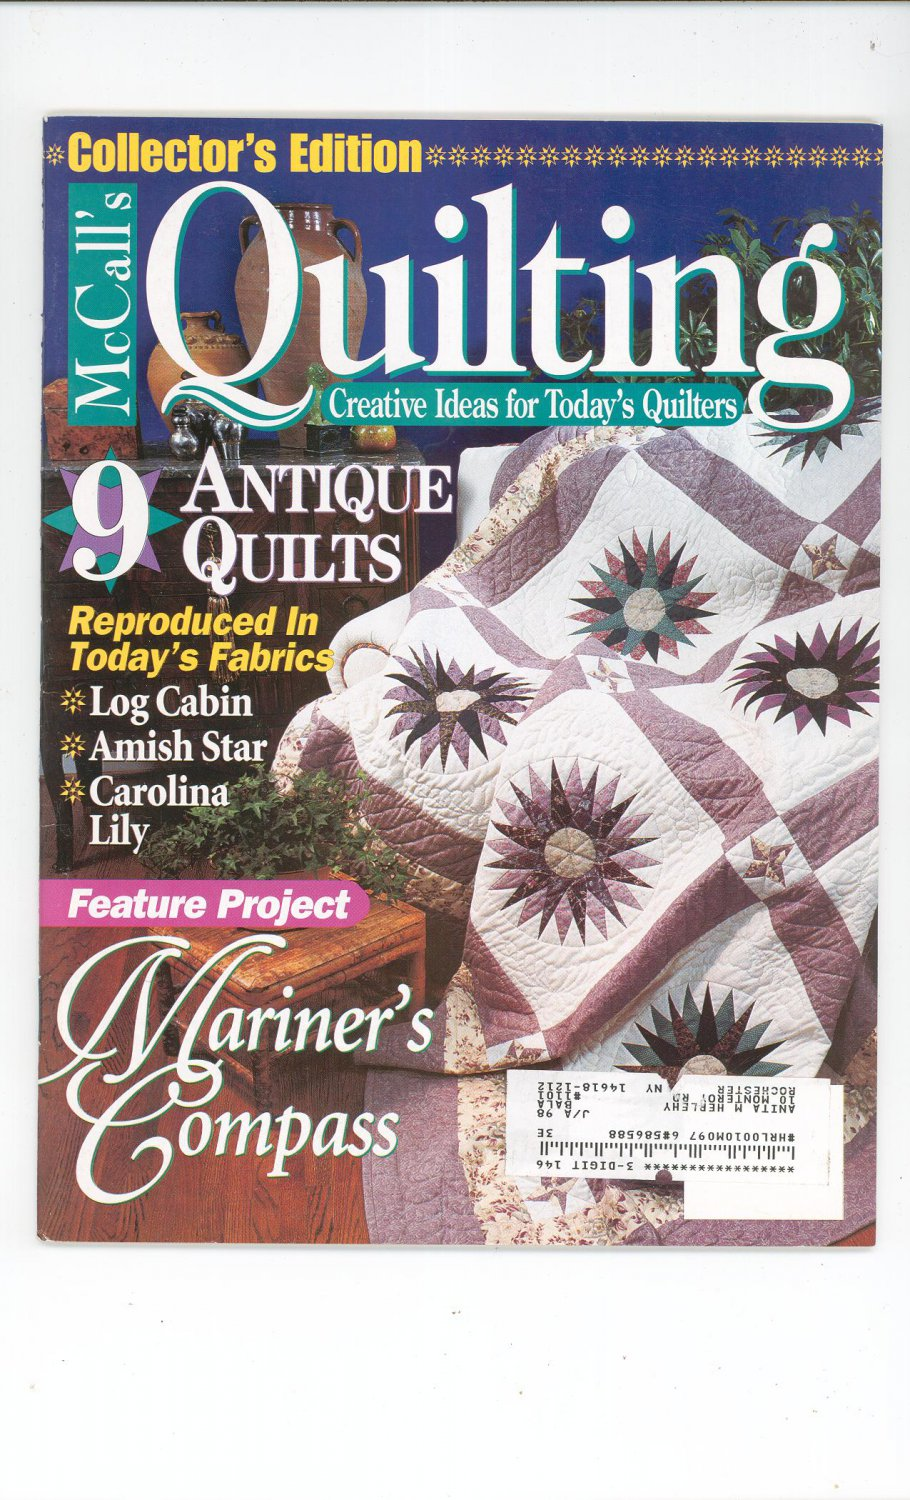 McCall's Quilting Magazine Back Issue February 1997 Collectors Edition